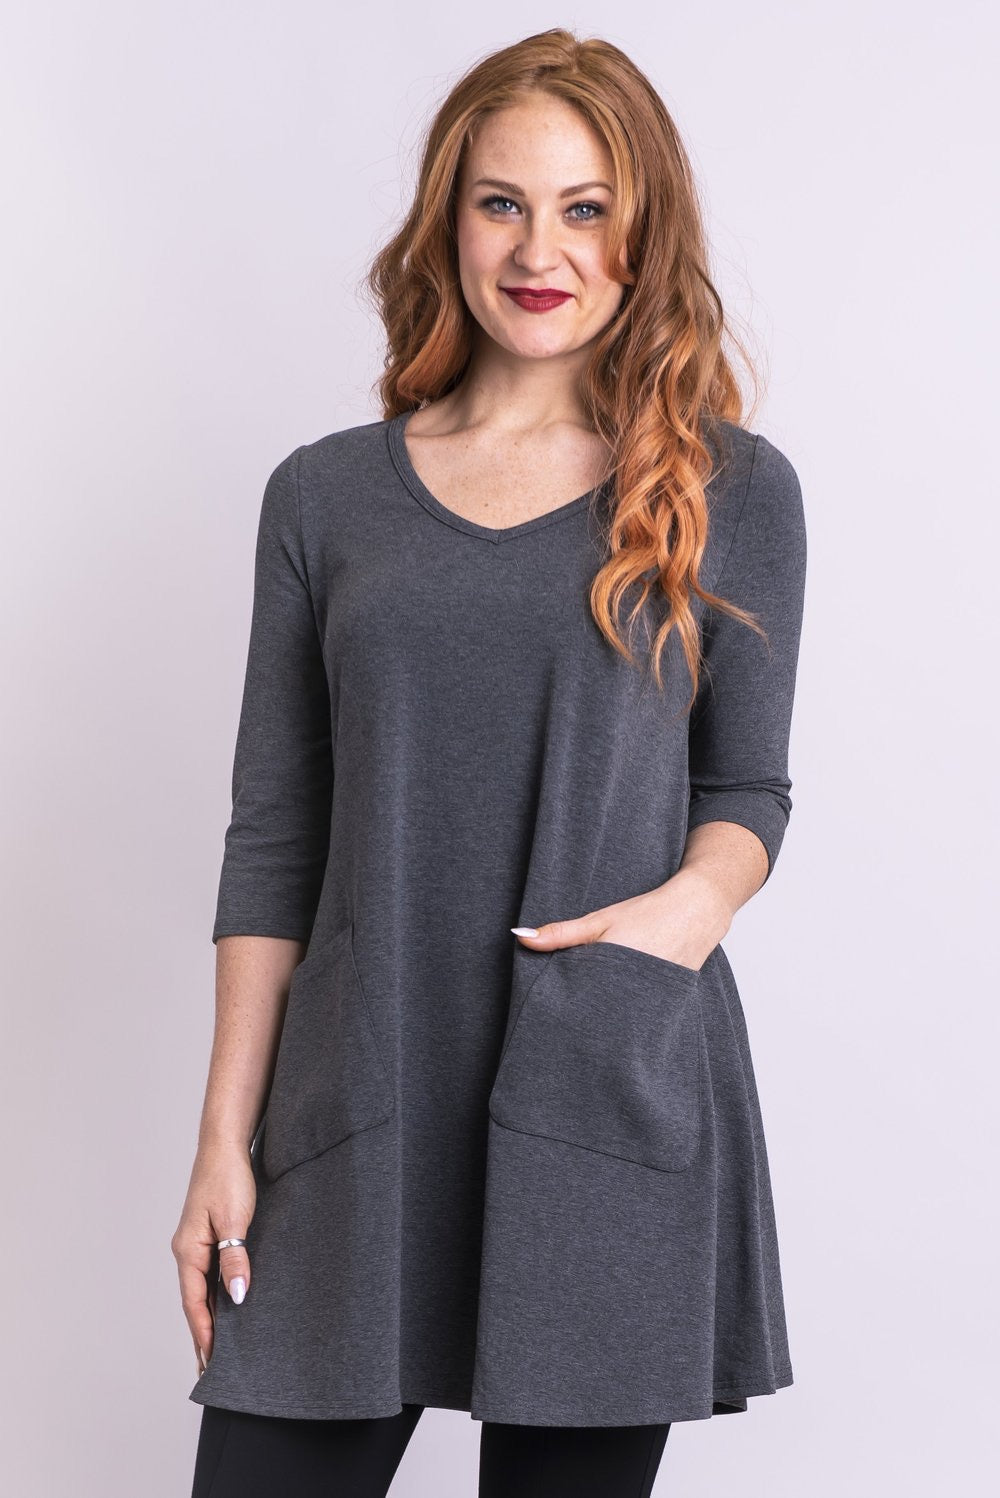 Bamboo Veronica tunic - grey